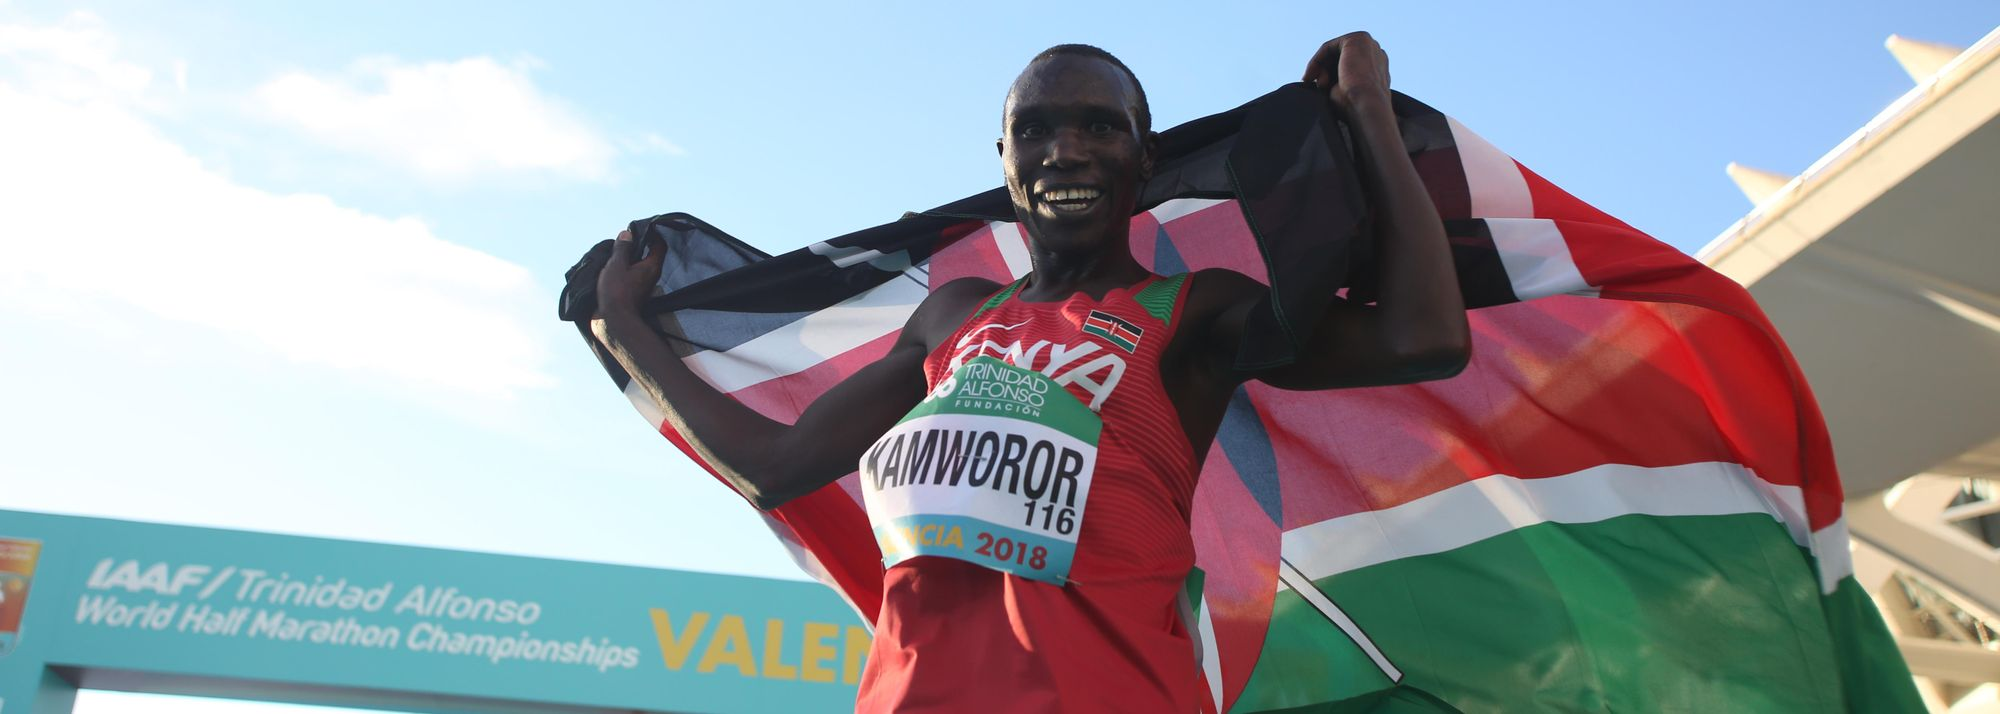 Unlike in the women's race, the record books were not revised by the men at the IAAF/Trinidad Alfonso World Half Marathon Championships Valencia 2018 but that didn't mean there was an absence of thrills and drama as Kenya's Geoffrey Kamworor romped away over the final six kilometres to secure his third successive world title over the distance.